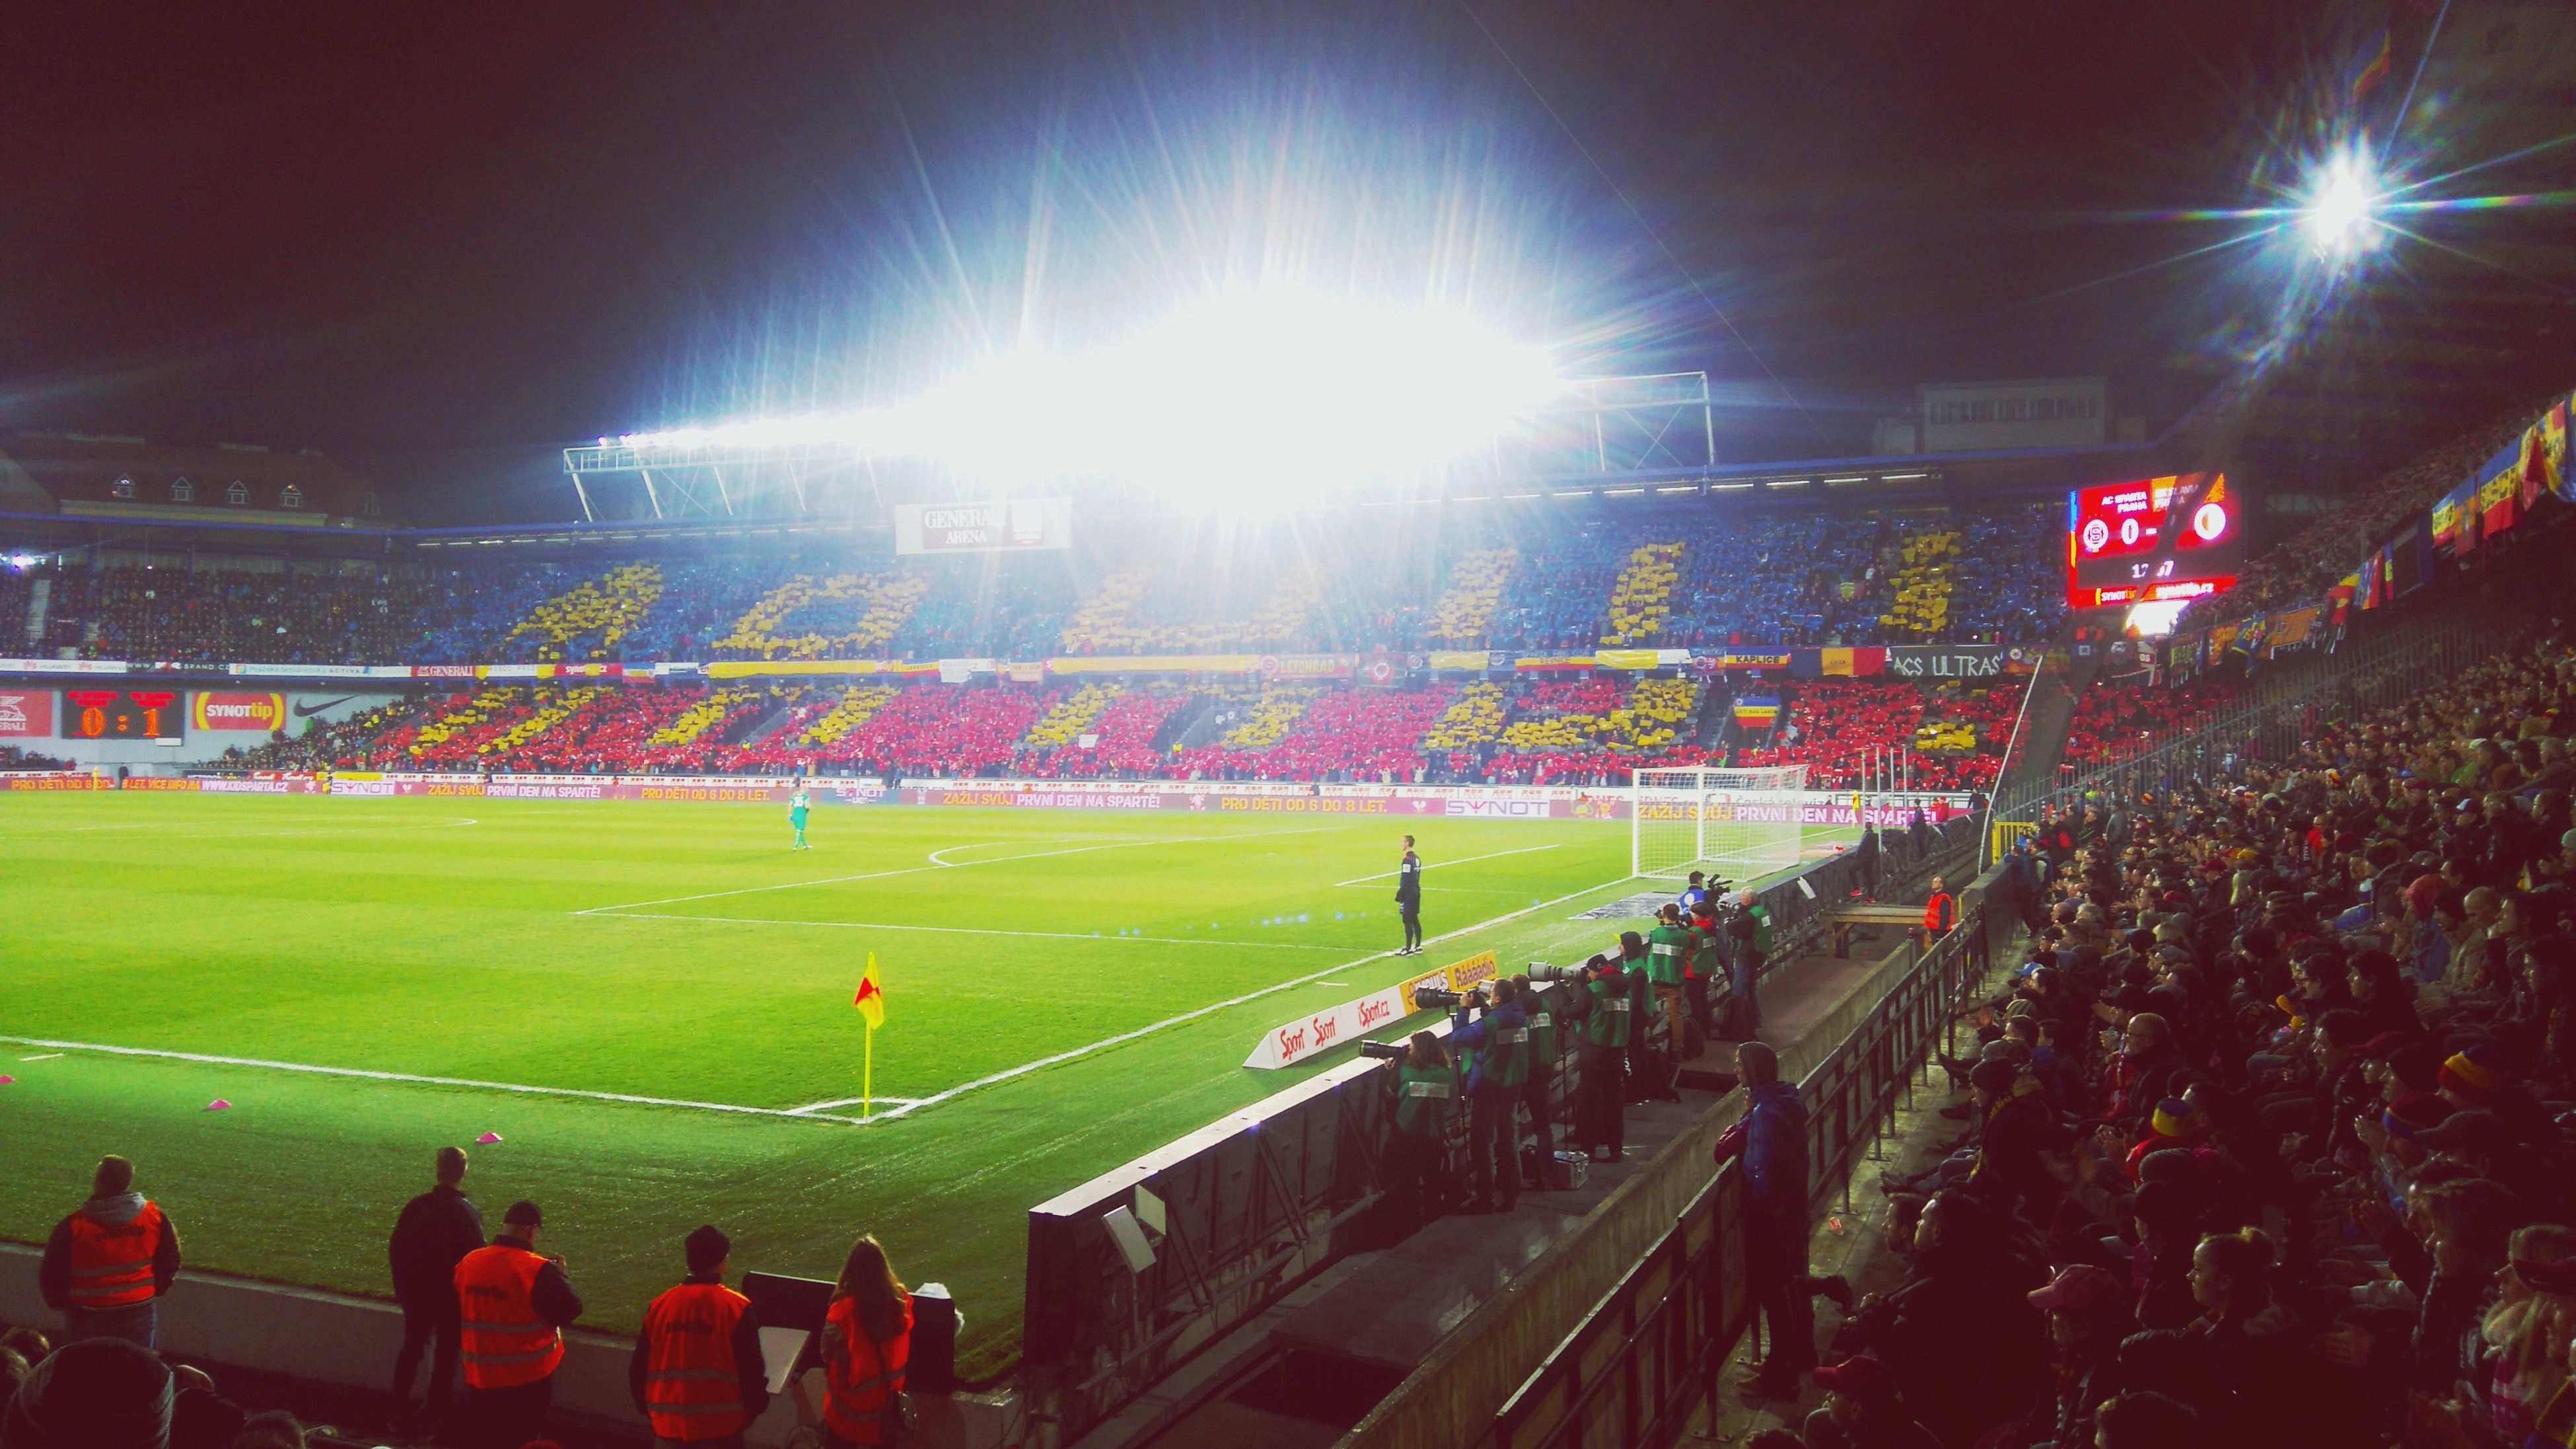 large group of people, stadium, crowd, spectator, sport, real people, soccer, audience, event, men, field, grass, togetherness, leisure activity, playing field, team sport, competition, outdoors, sports team, teamwork, fan - enthusiast, night, illuminated, soccer field, competitive sport, sportsman, sky, people